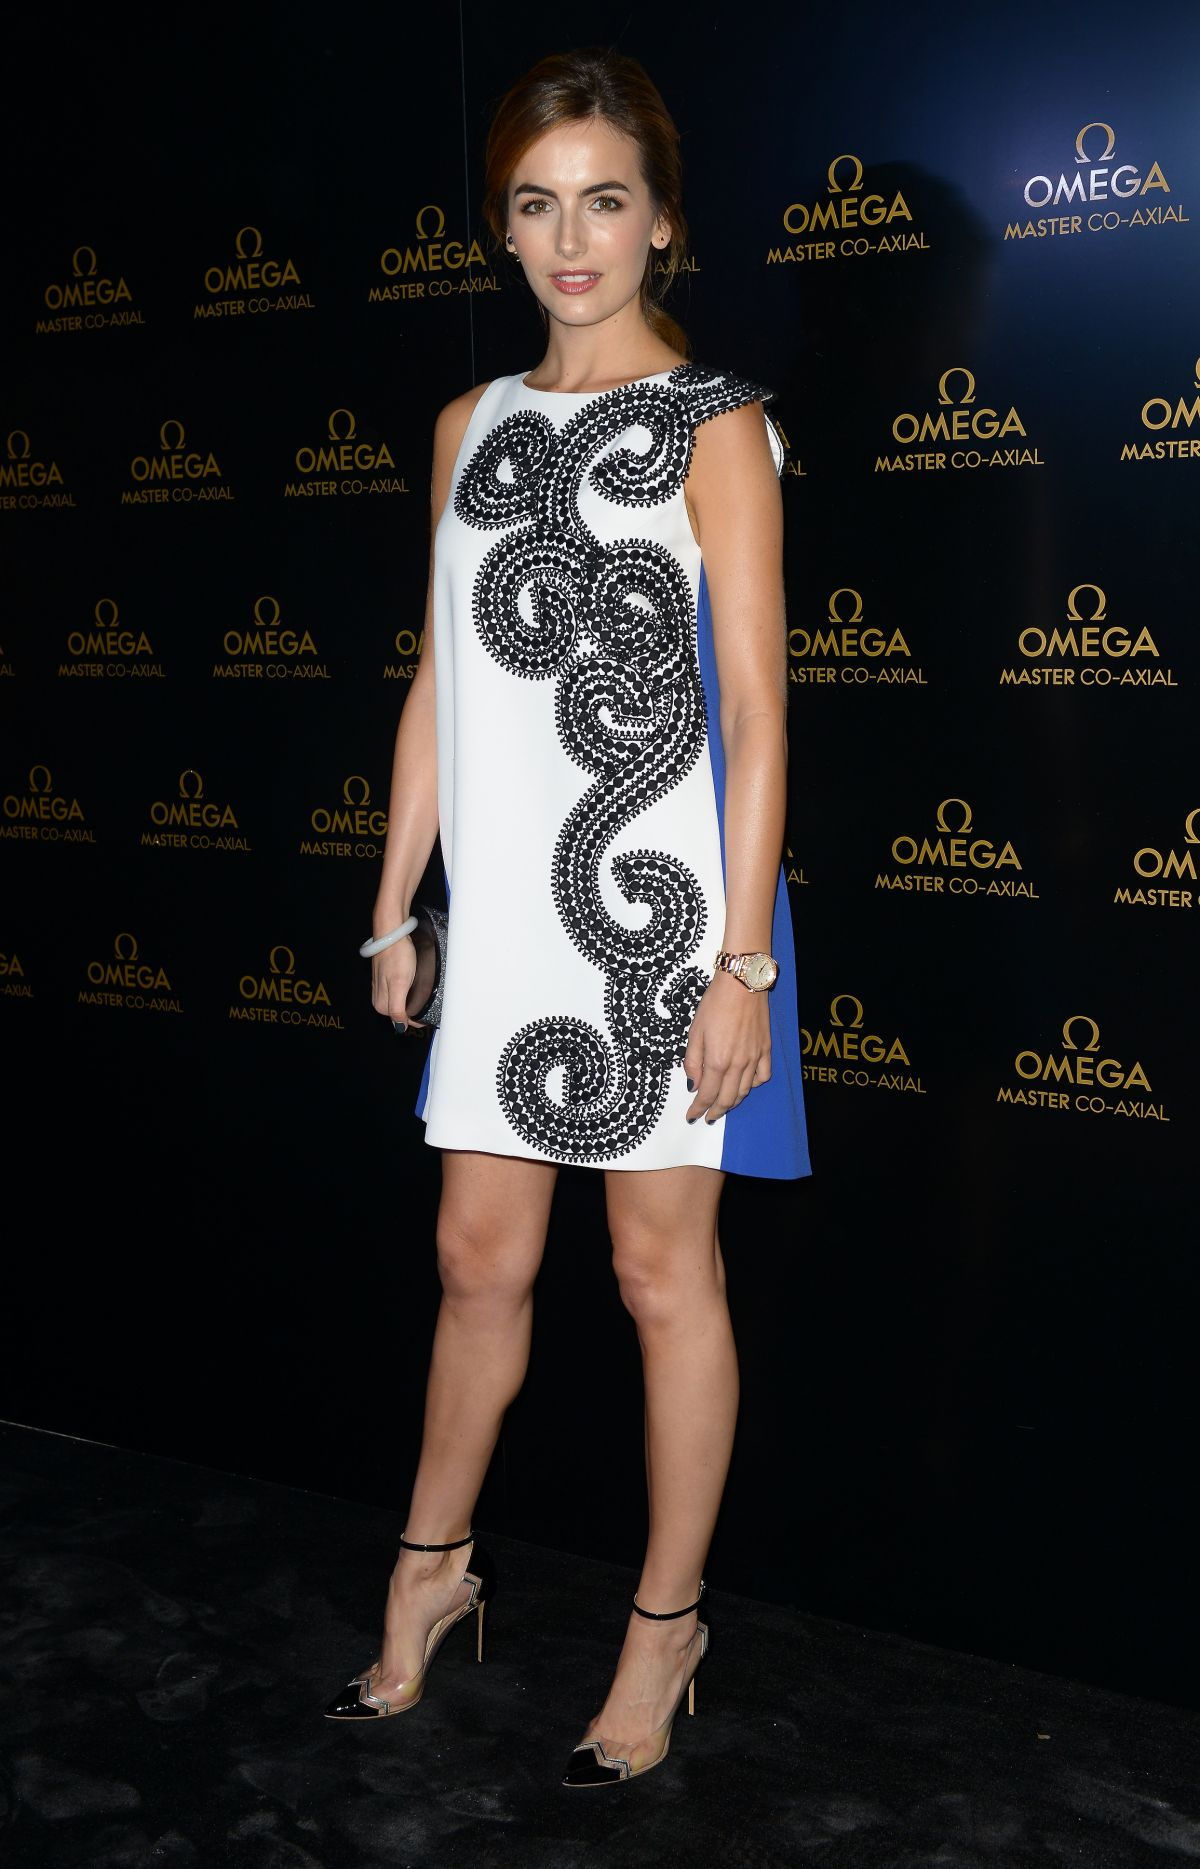 camilla-belle-at-omega-store-opening-in-miami_3